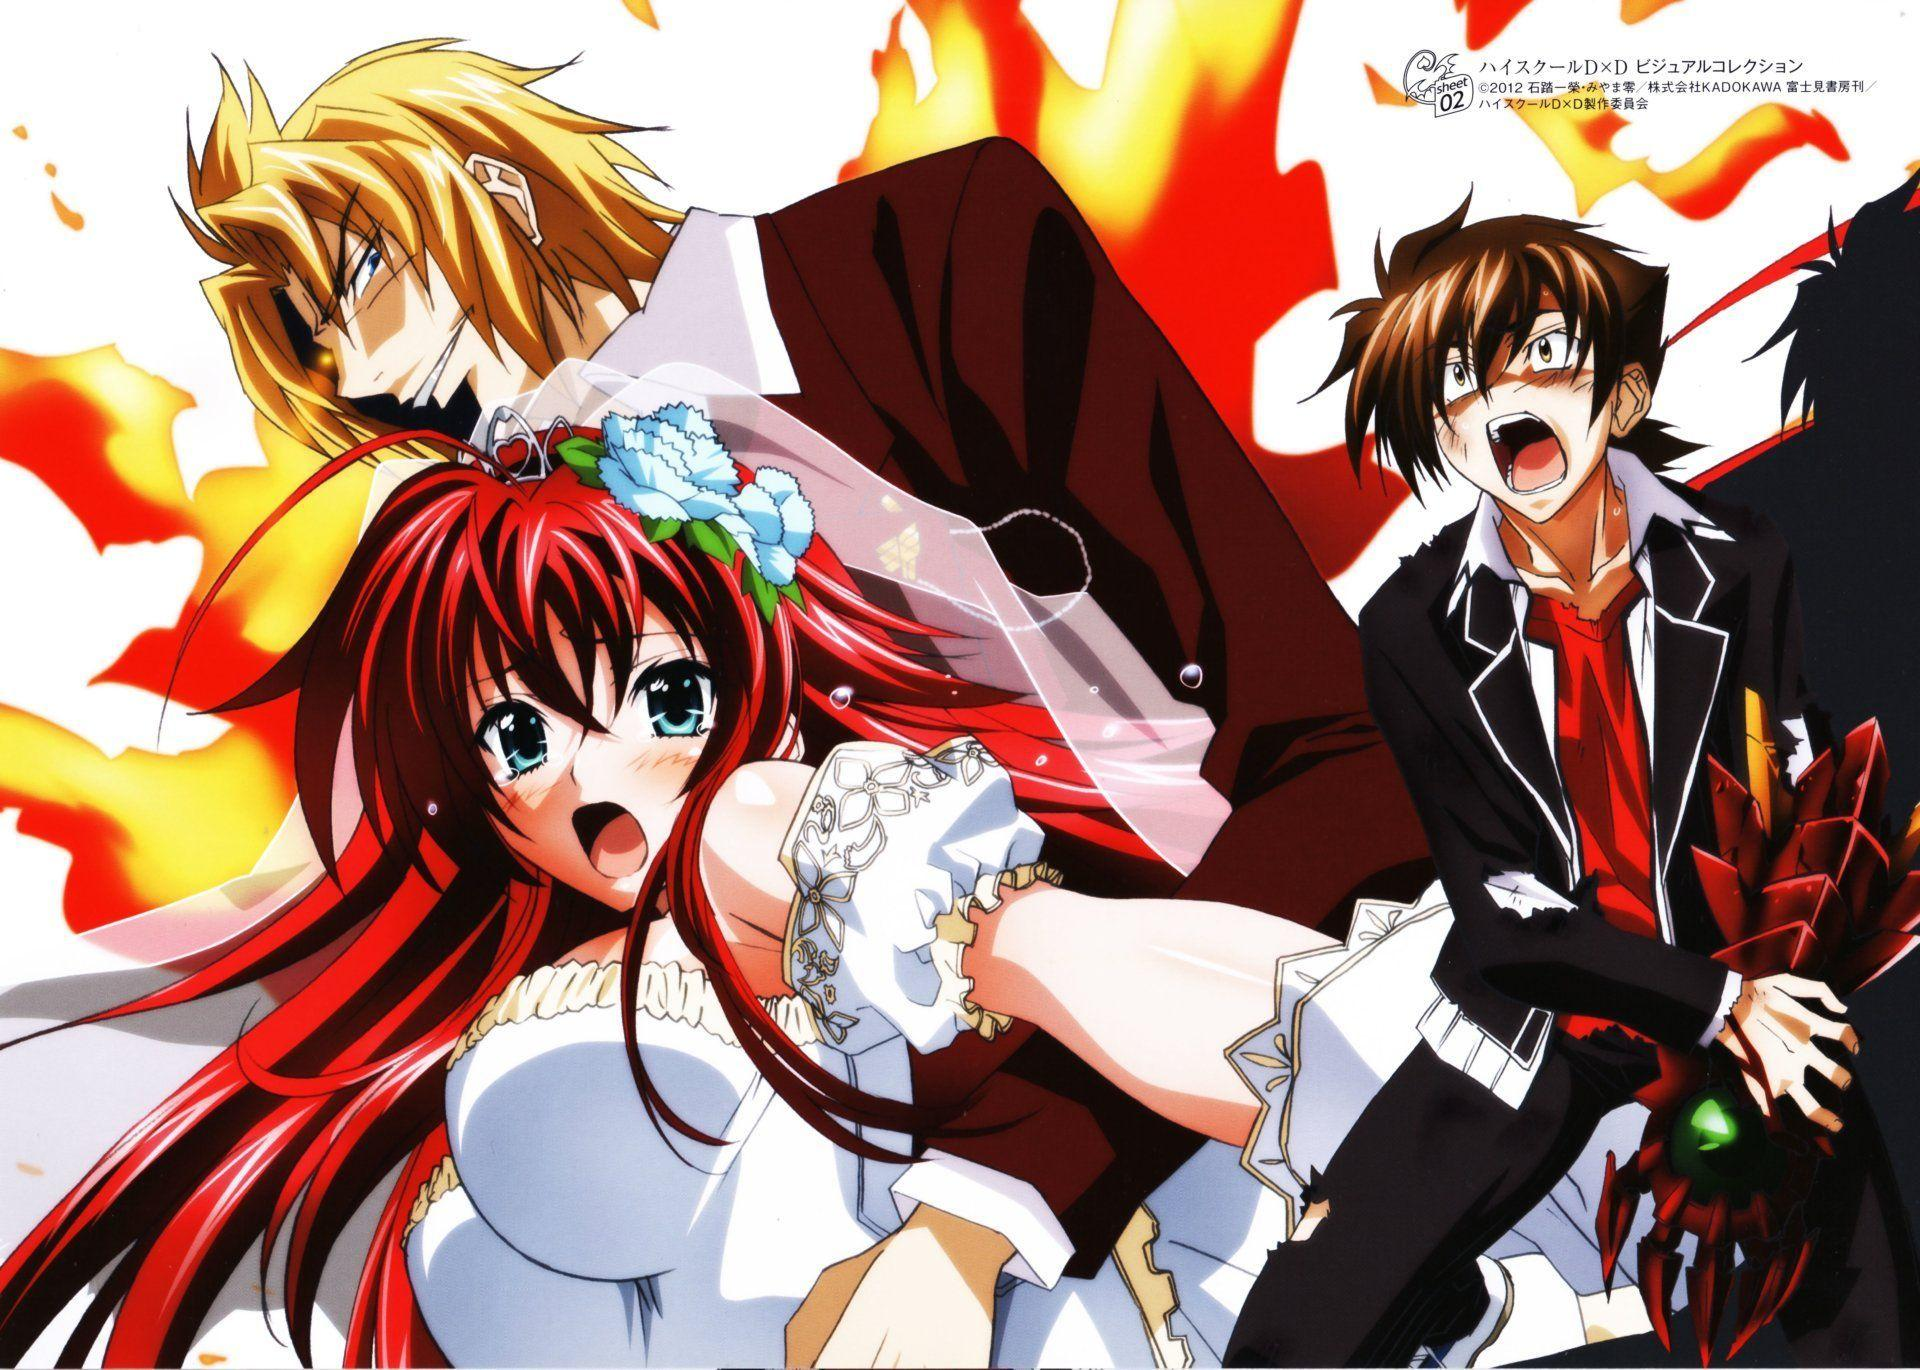 Anime High School DxD Fondo de Pantalla